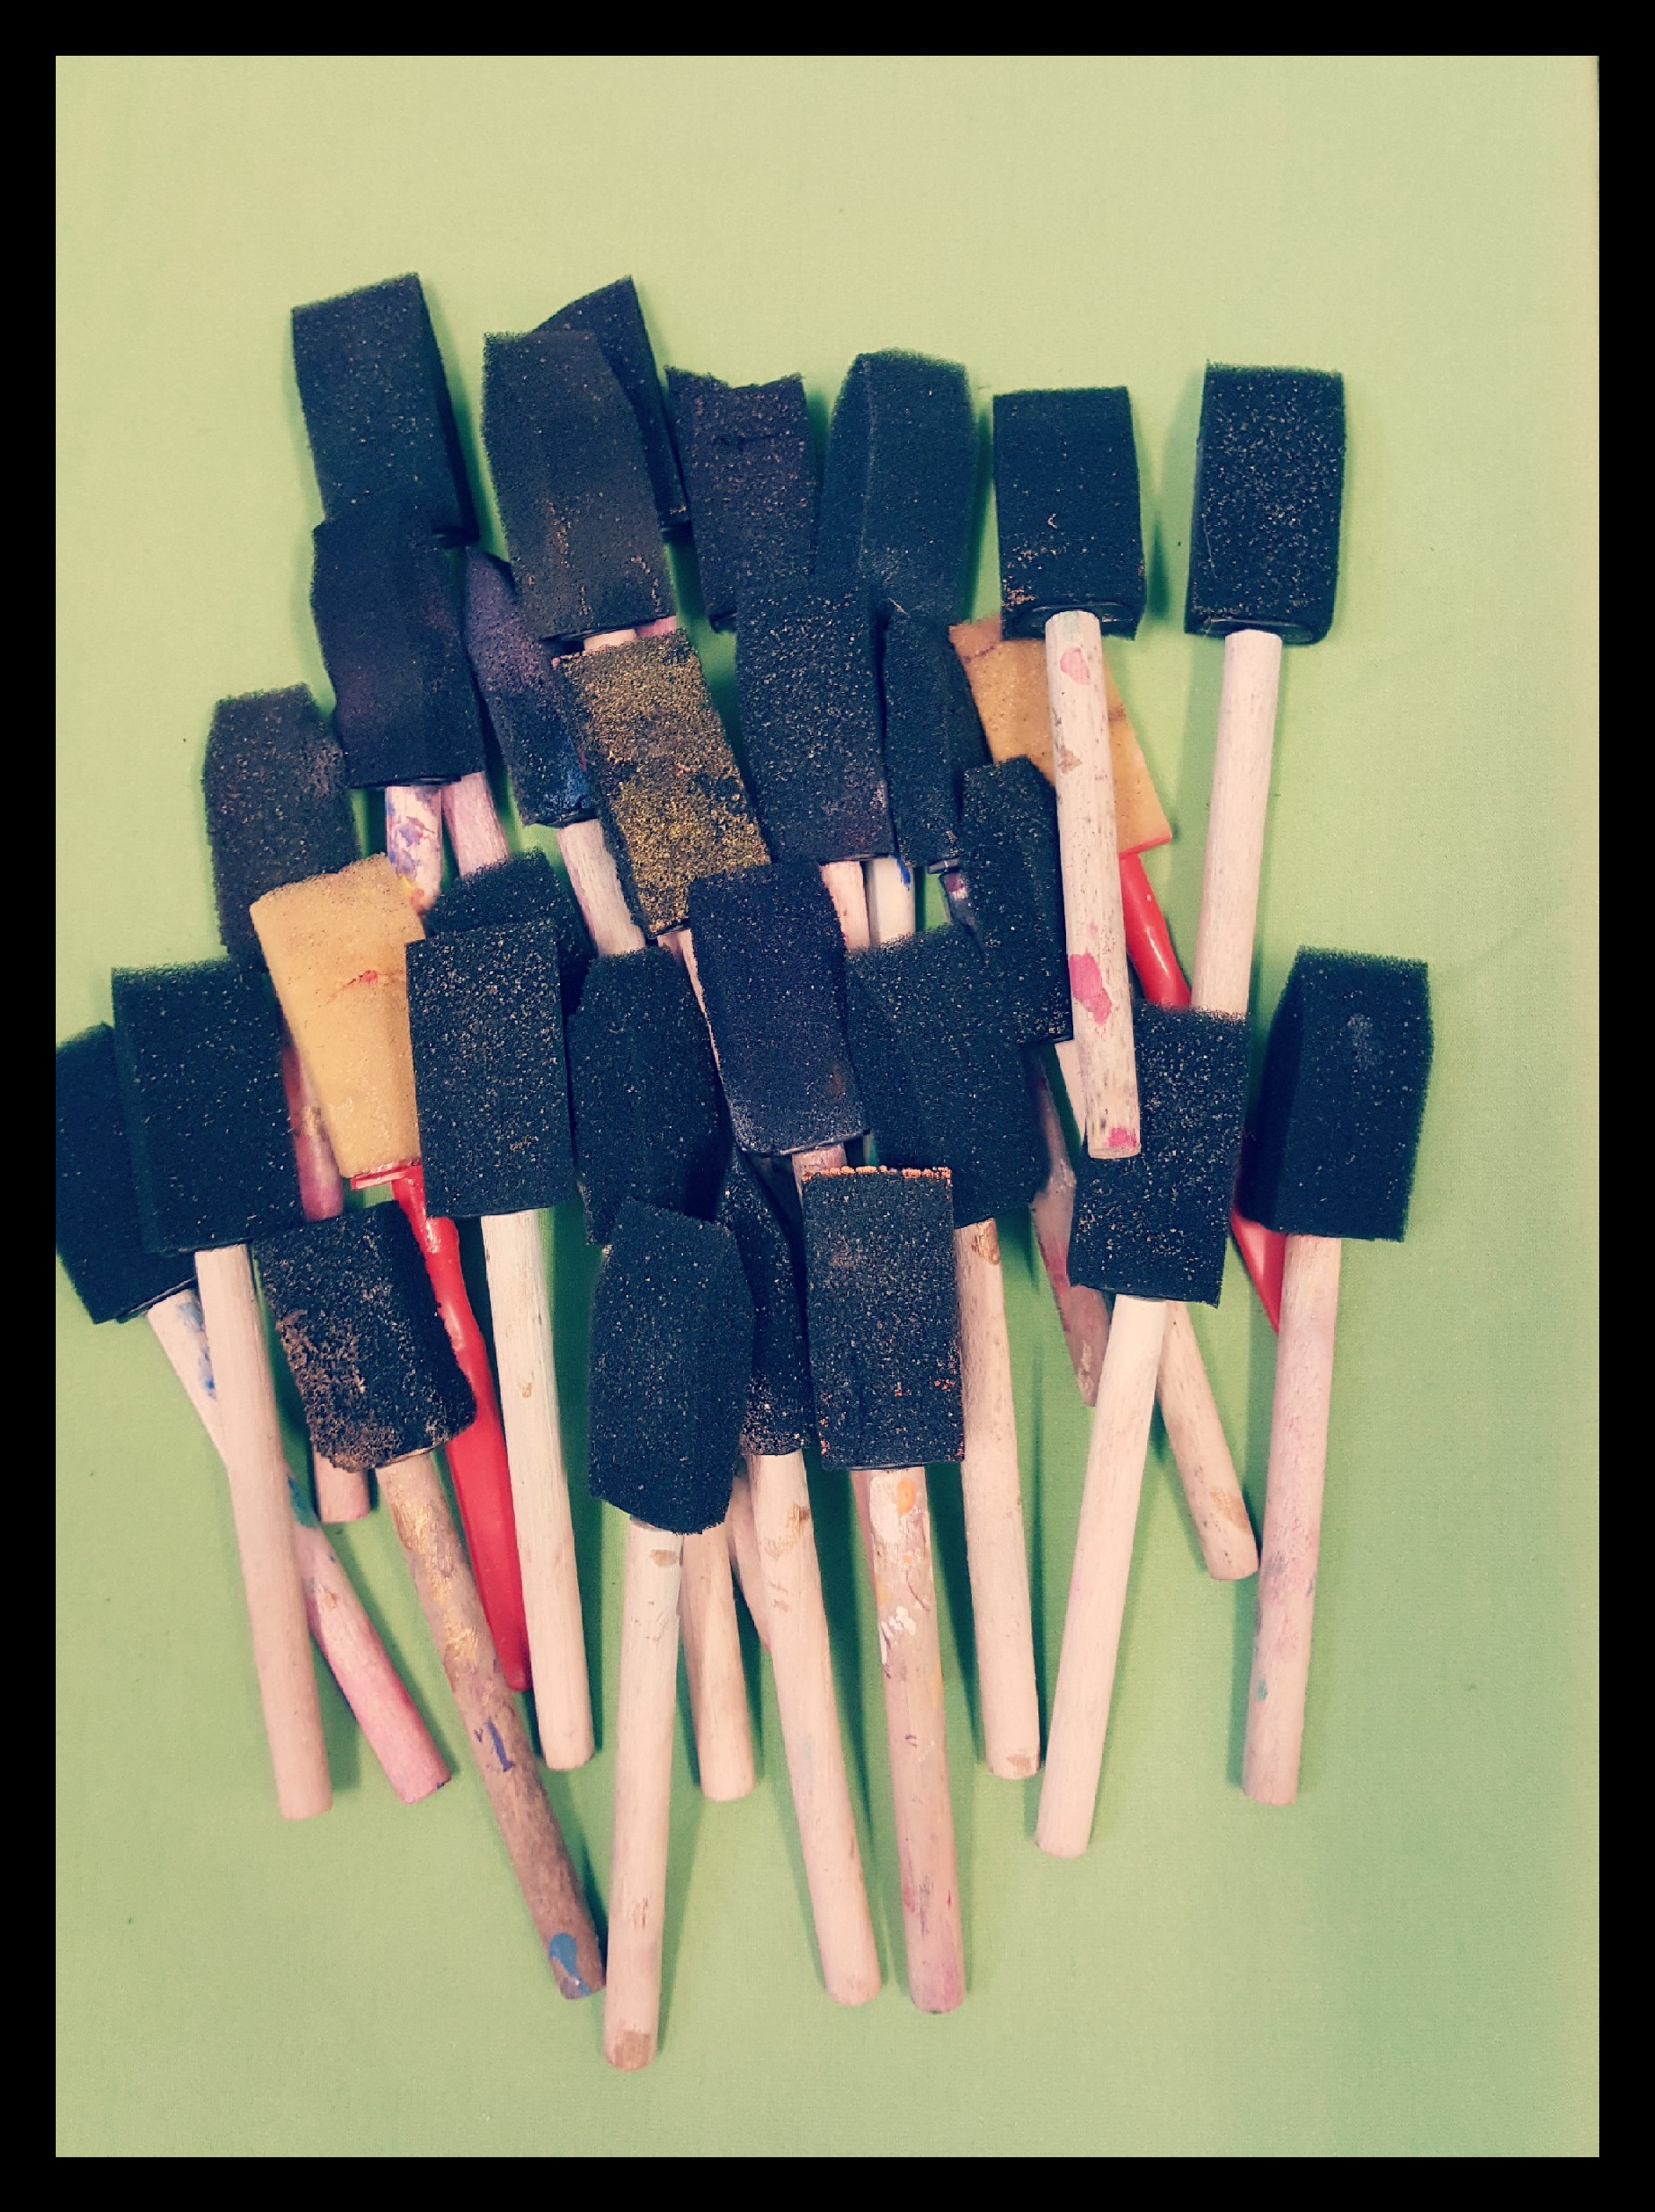 School Supplies – Foam Brushes